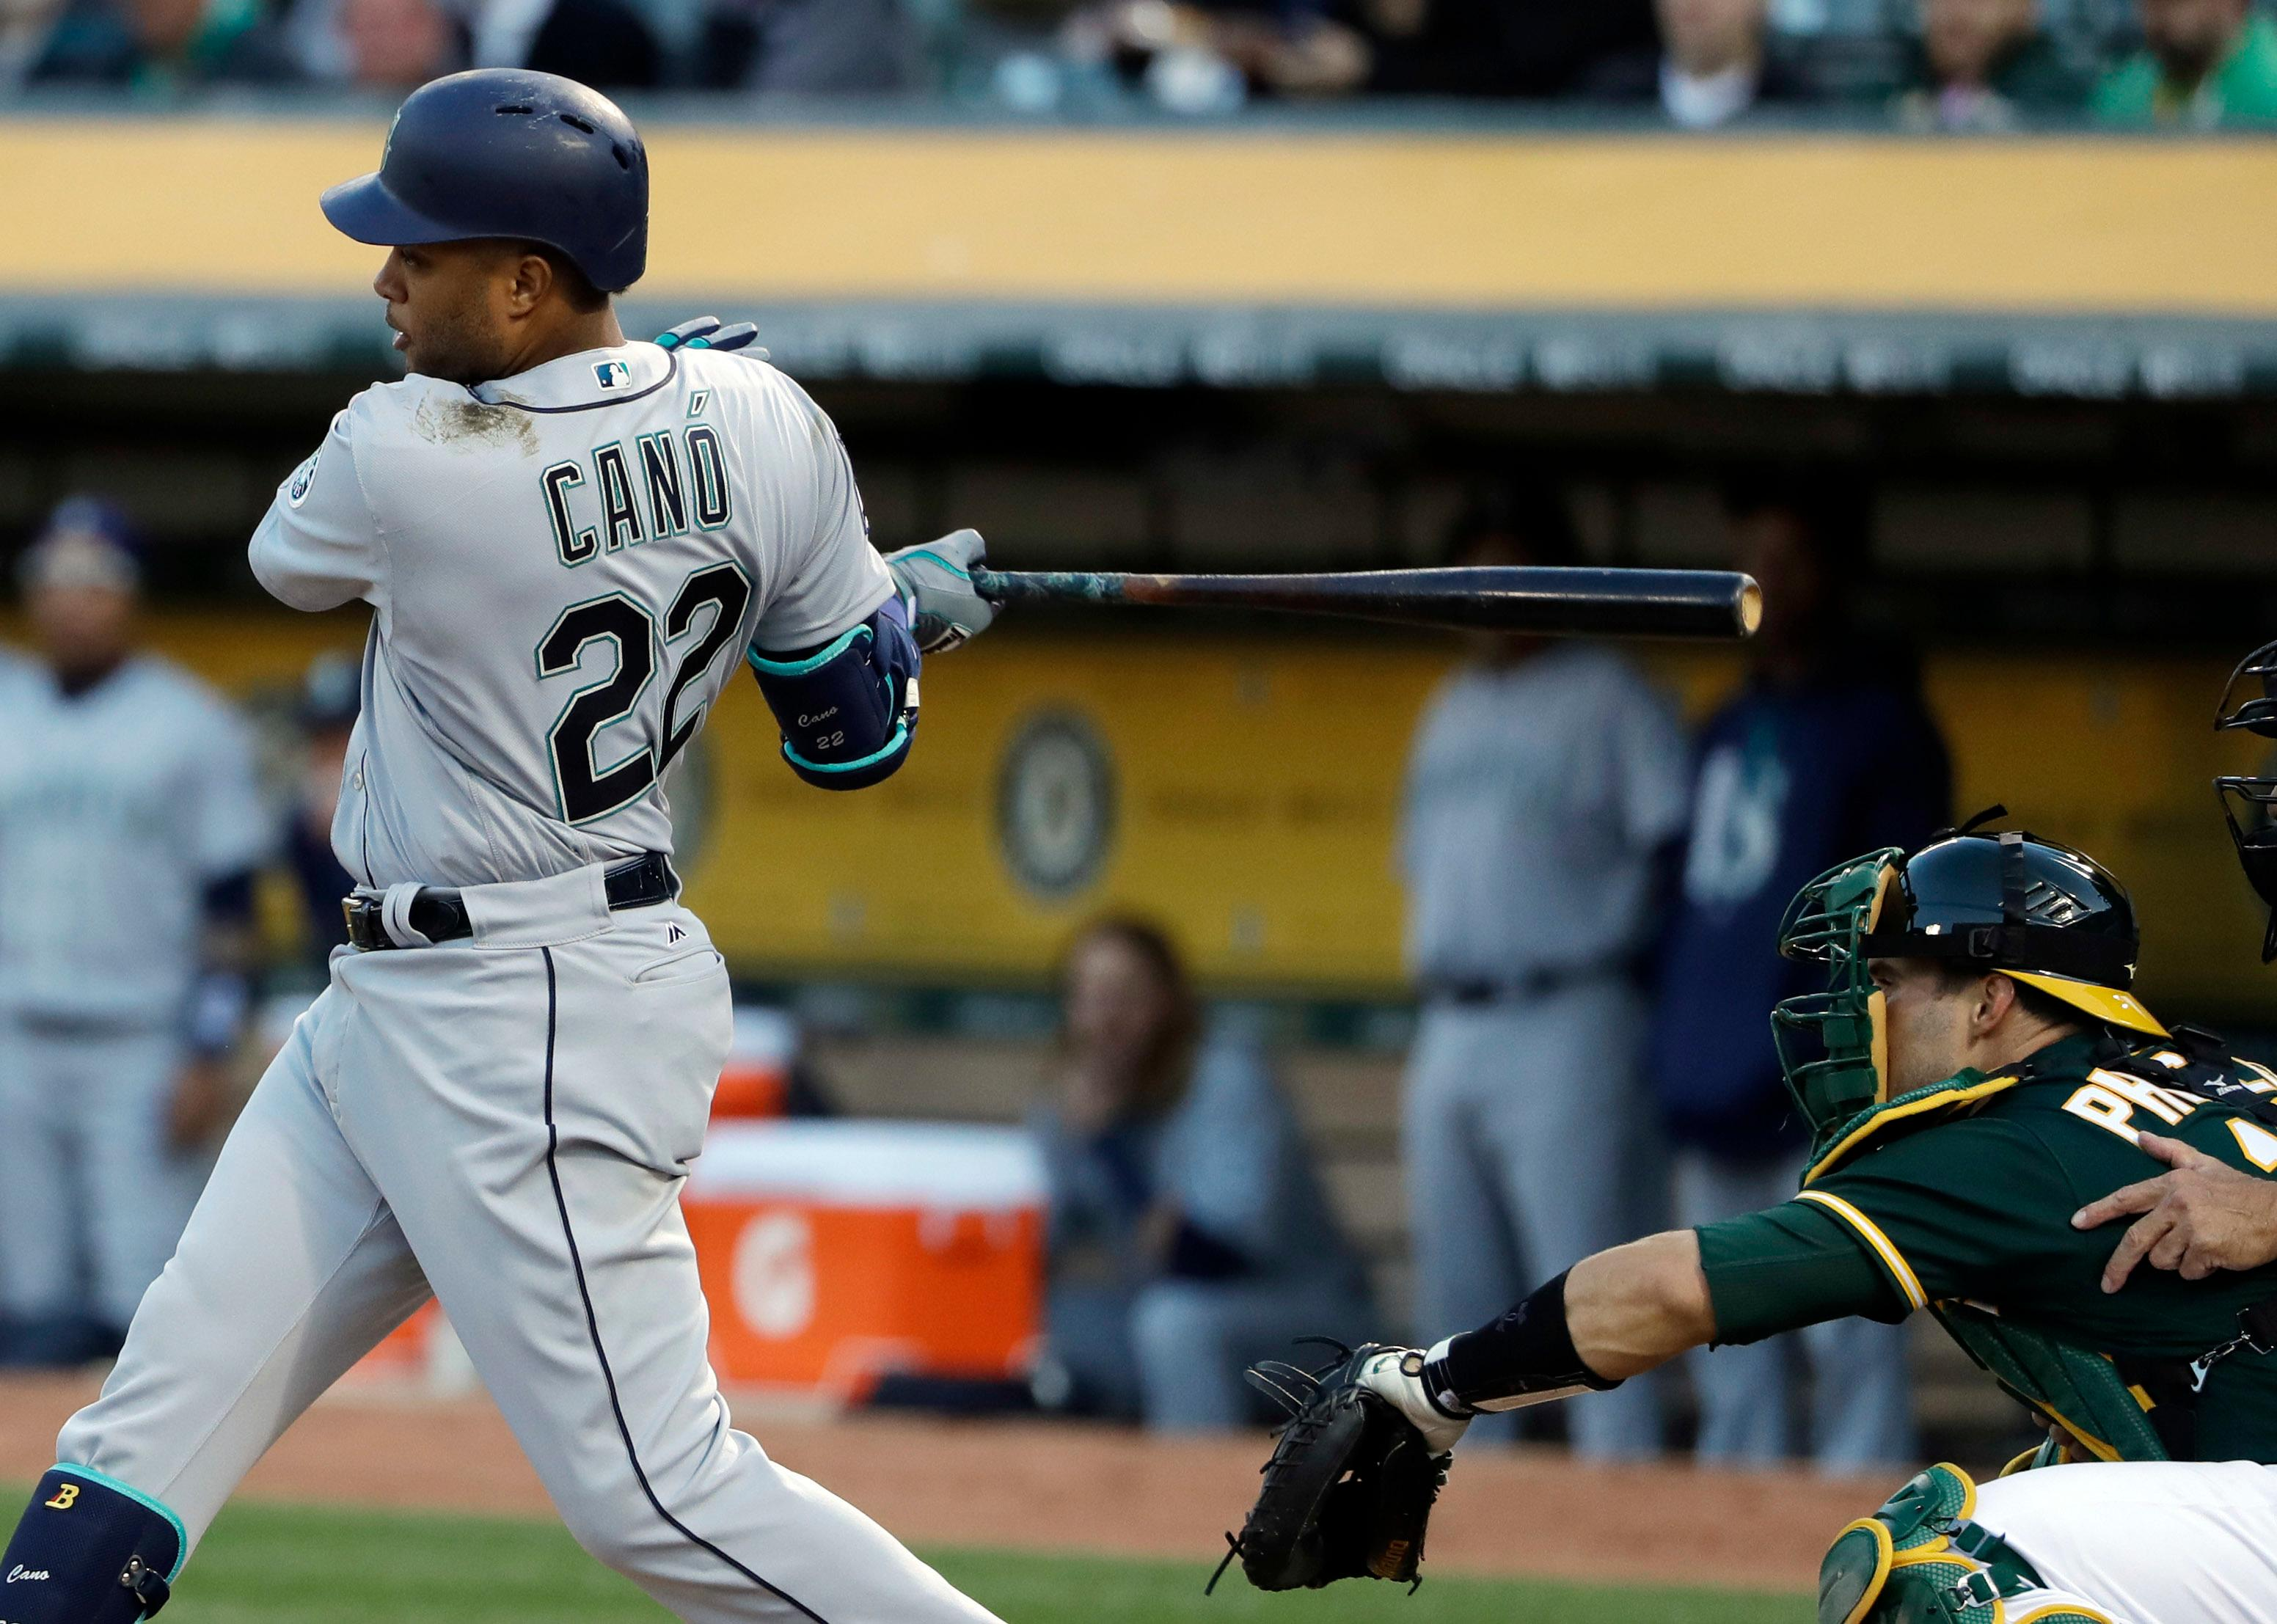 Seattle Mariners' Robinson Cano (22) drives in a run with a single against the Oakland Athletics during the first inning of a baseball game Thursday, April 20, 2017, in Oakland, Calif. (AP Photo/Marcio Jose Sanchez)